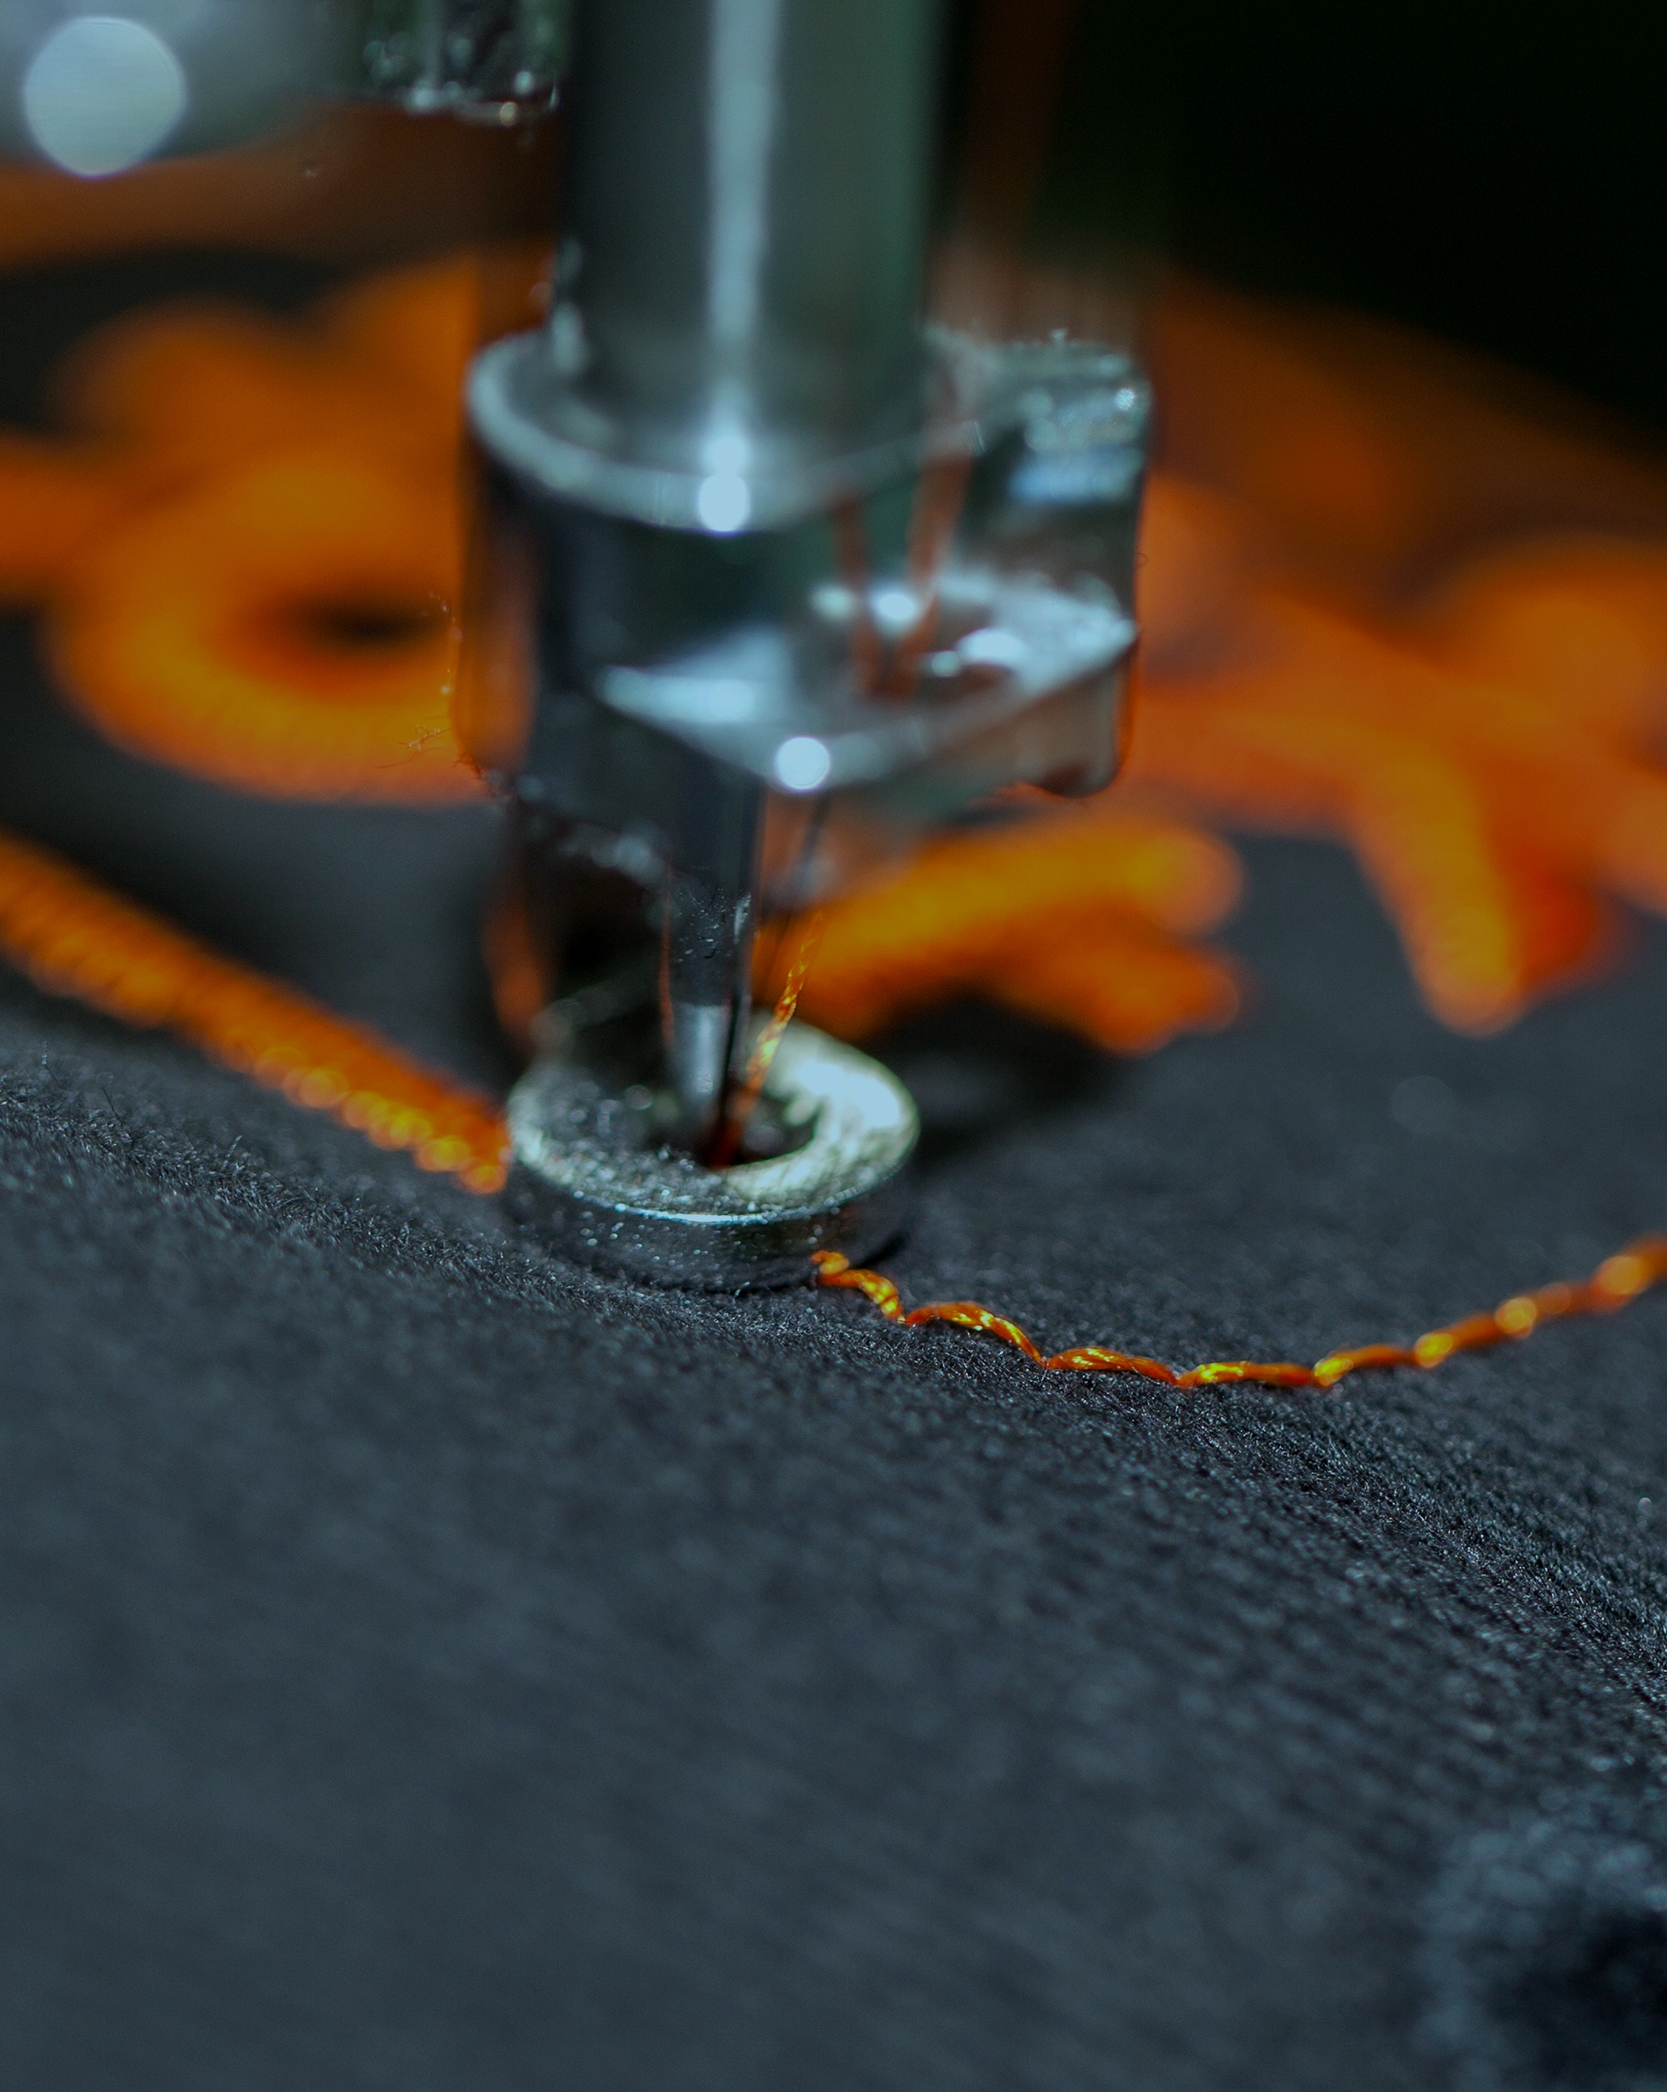 Embroidery - We can embroider on a multitude of products and can handle large quantities as well as single pieces. From polos and hats to towels and backpacks, we have done it and we want to do it again for you.